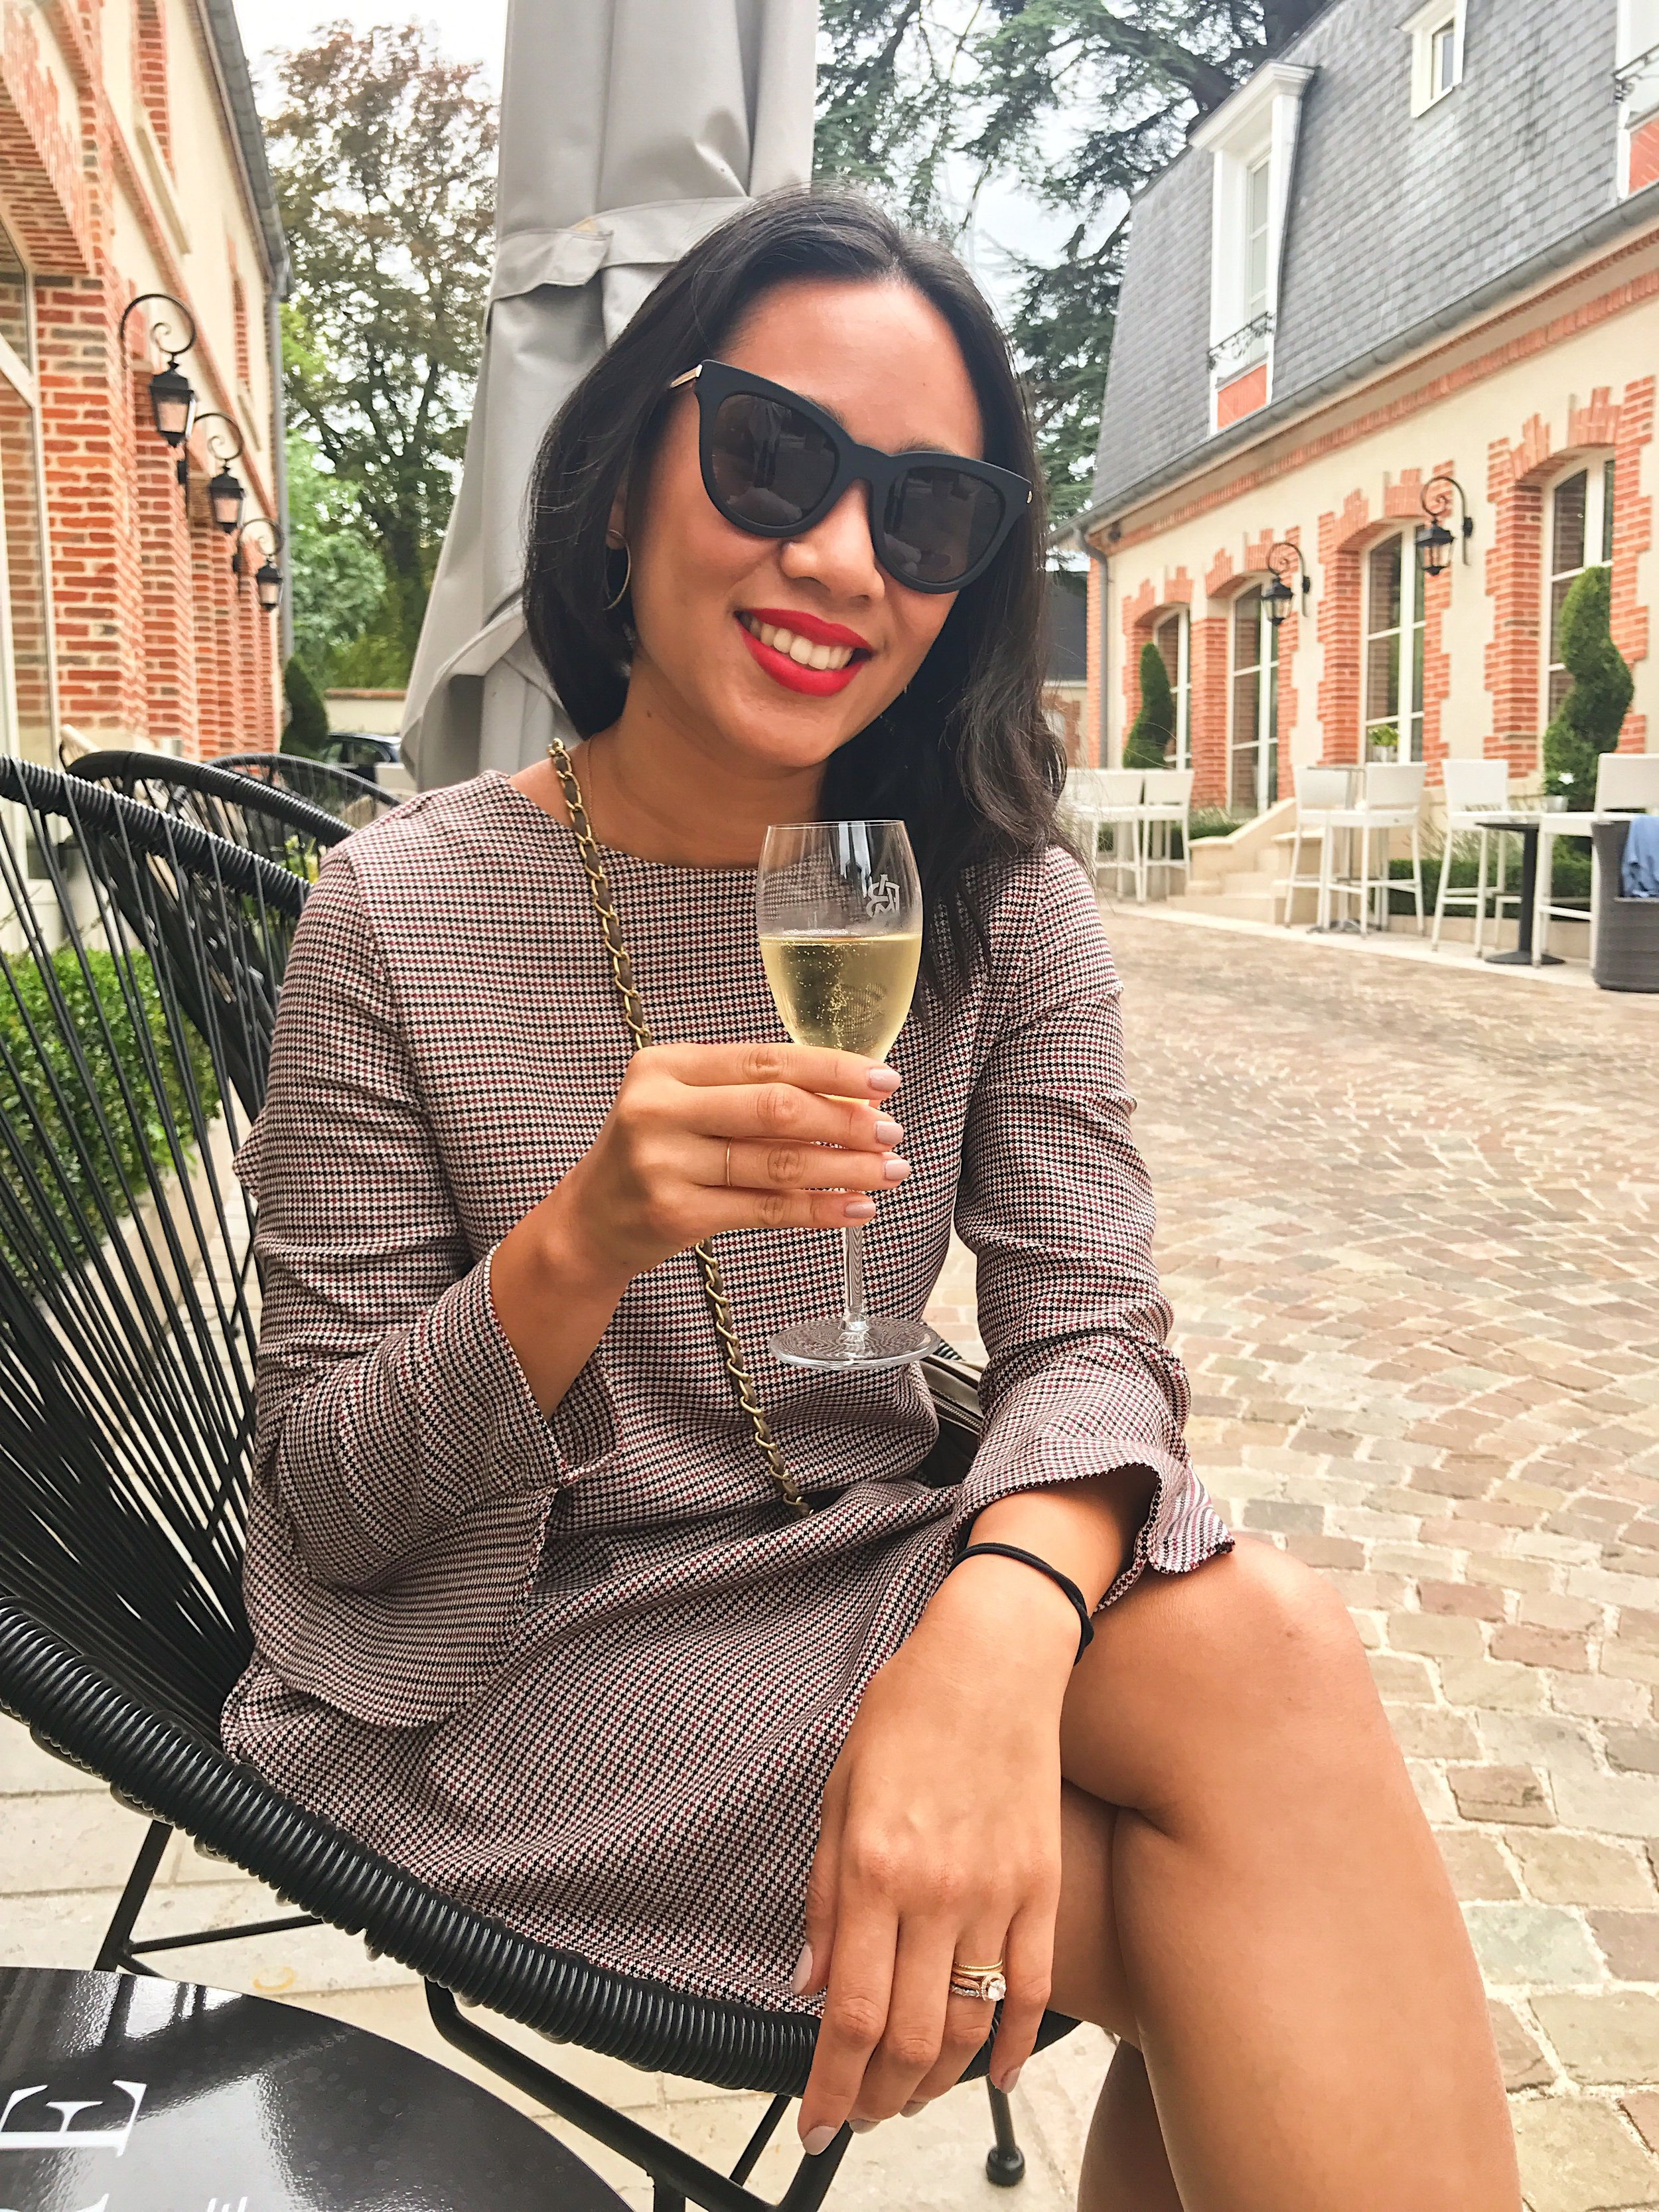 My final glass of bubbly along the Avenue de Champagne